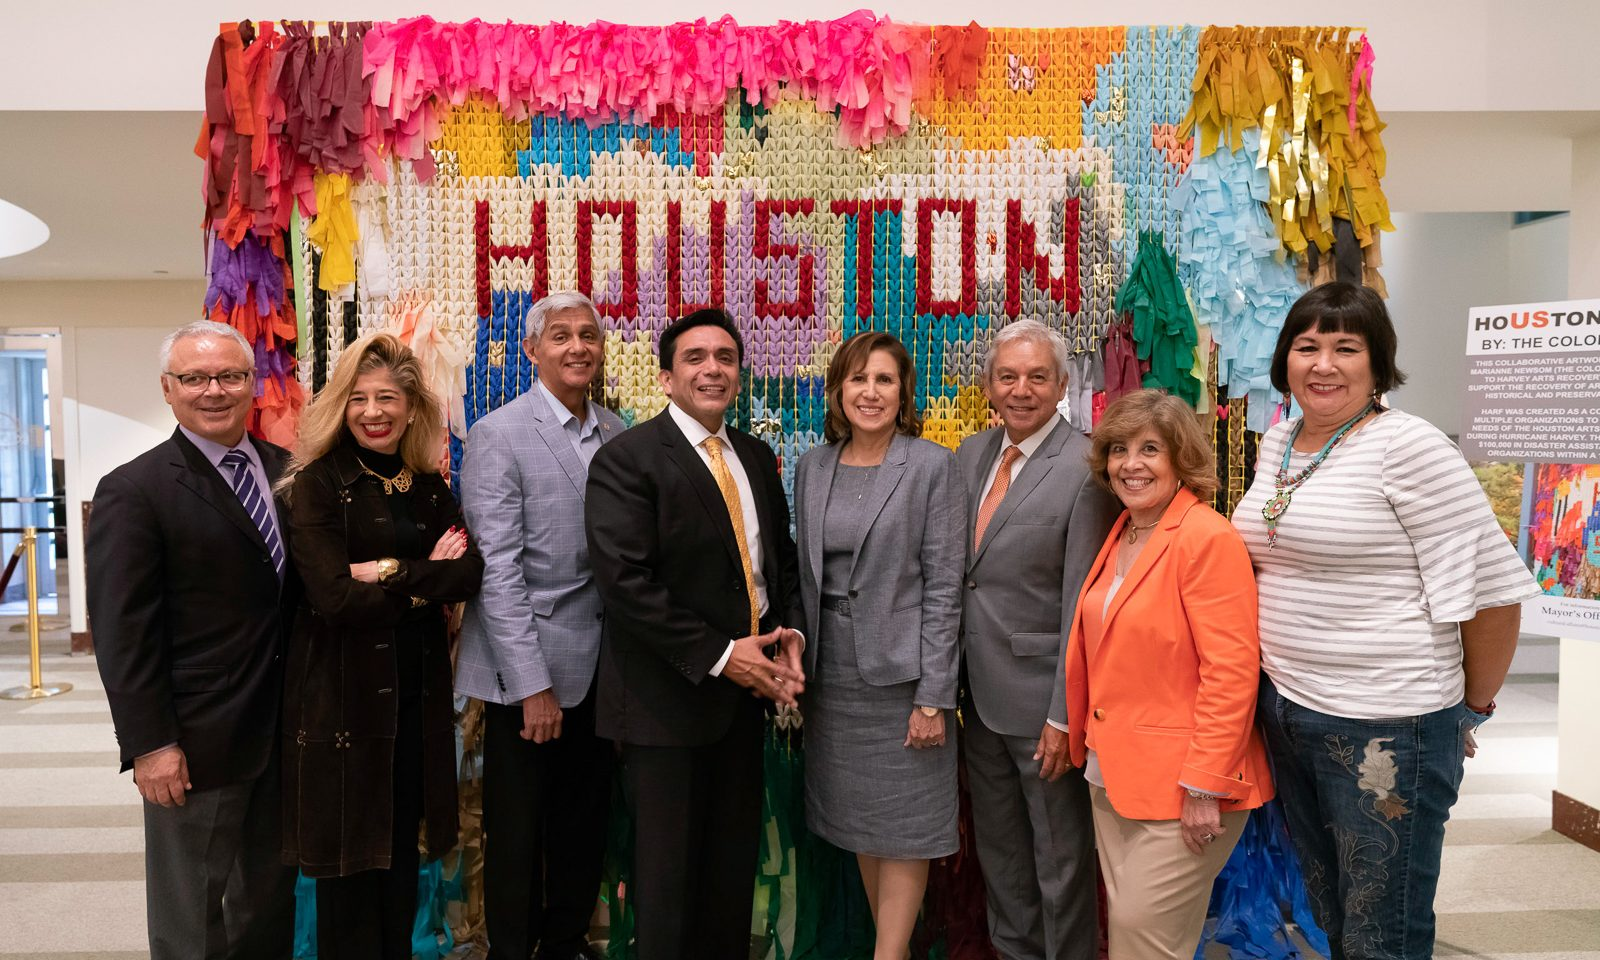 Houston Equity Report Press Conference at Houston City Hall September 2018